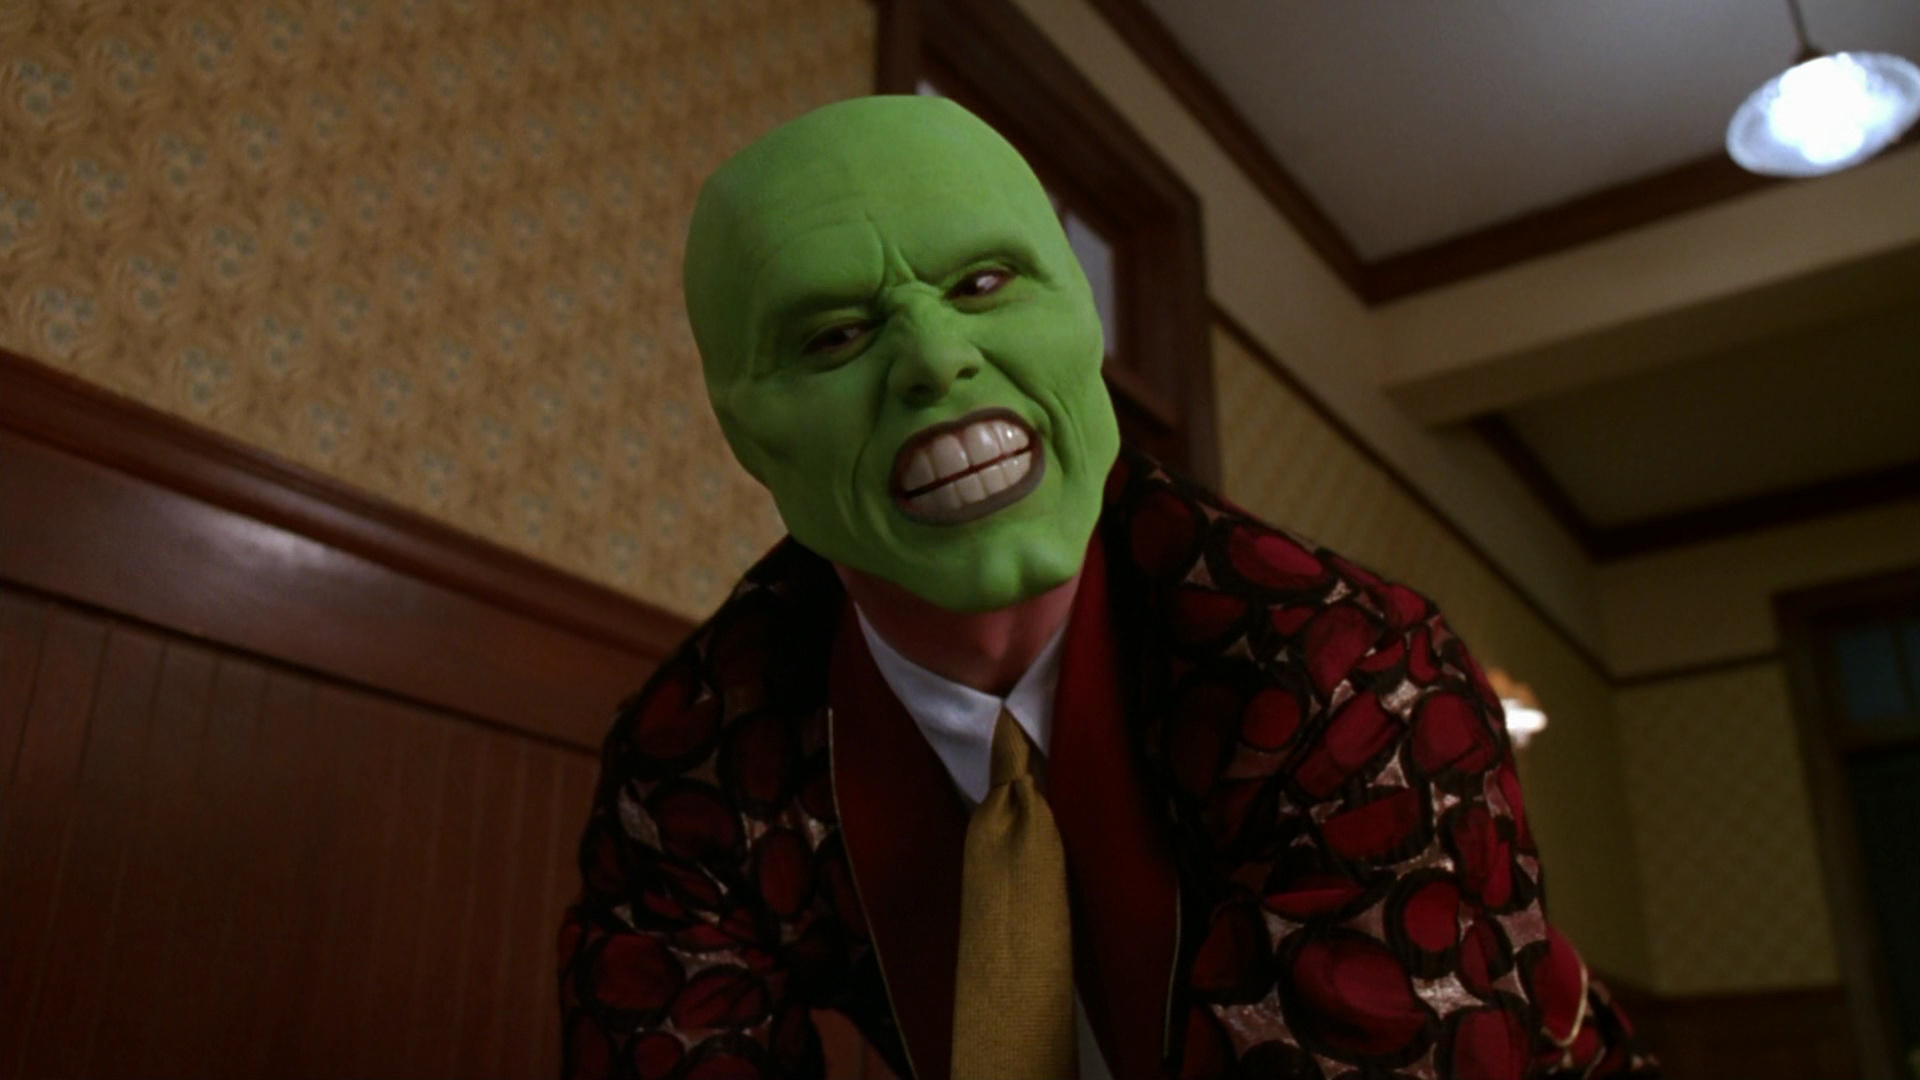 The Mask facts